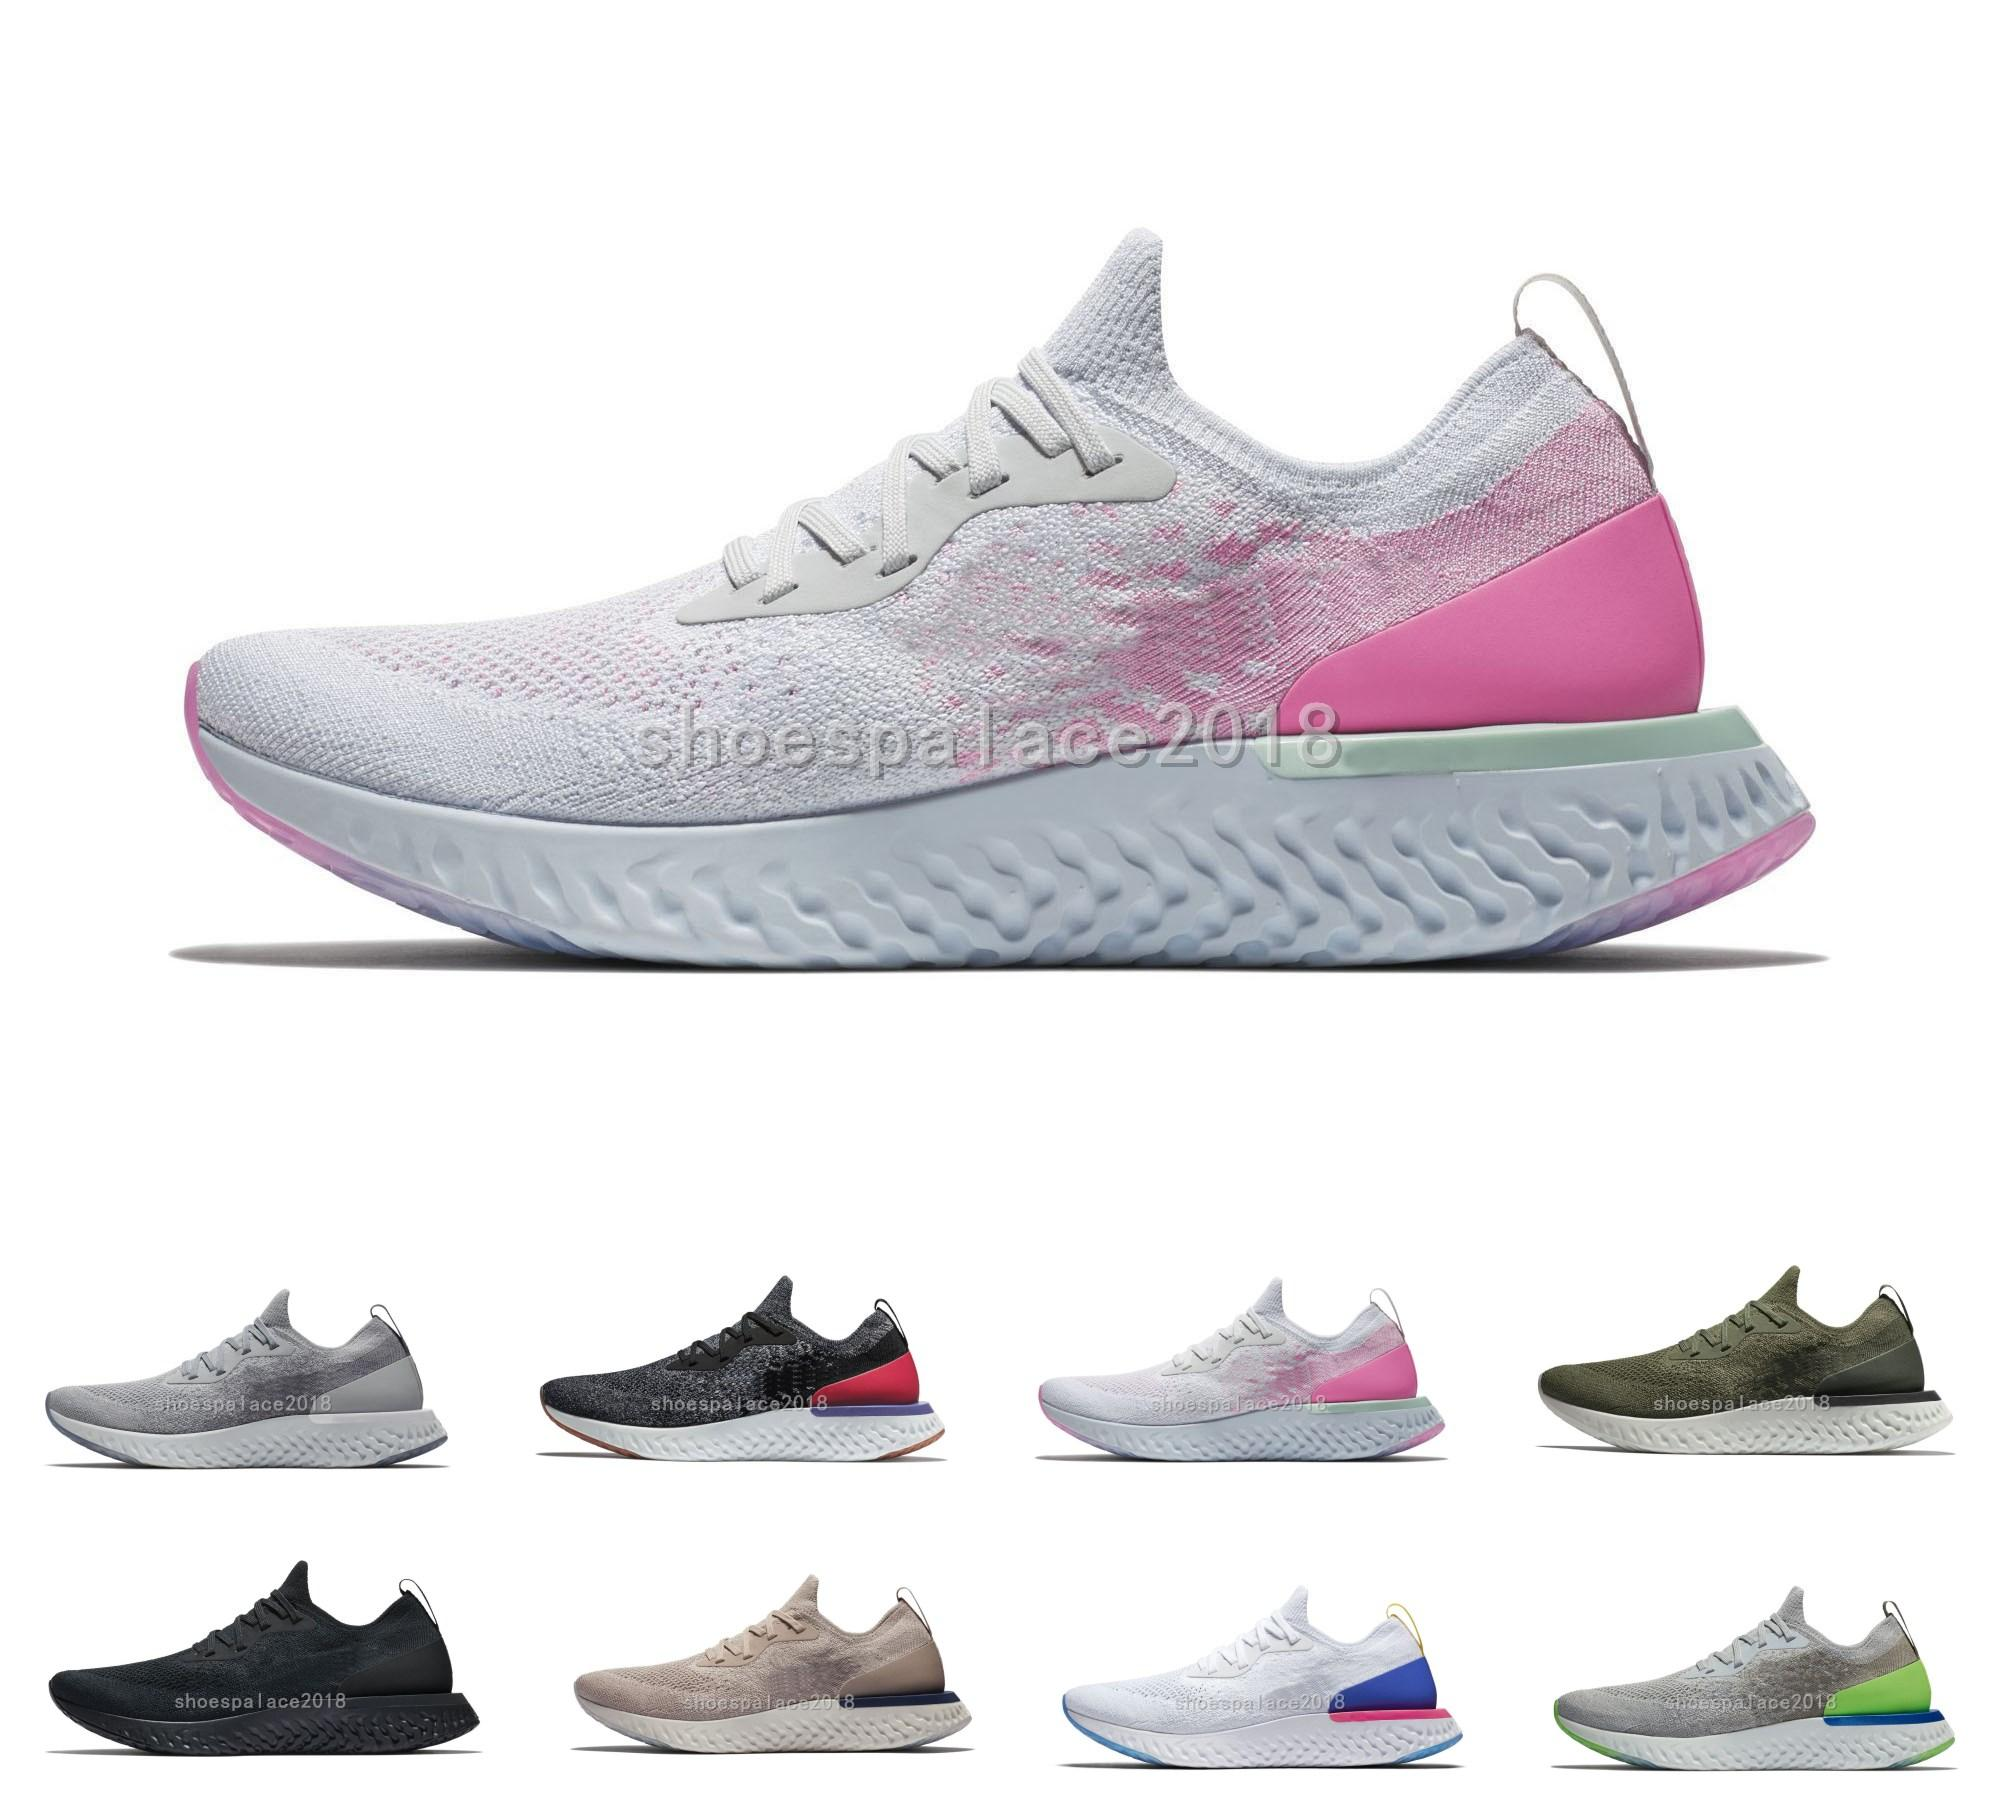 30cb61fa2368 Women Running Shoes Epic React Fly Knit Trainers Mens Sports Fashion Racing  Runner Men Sports Athletic Walking Sneakers Daily Gym Shoe Men Shoes Online  Best ...